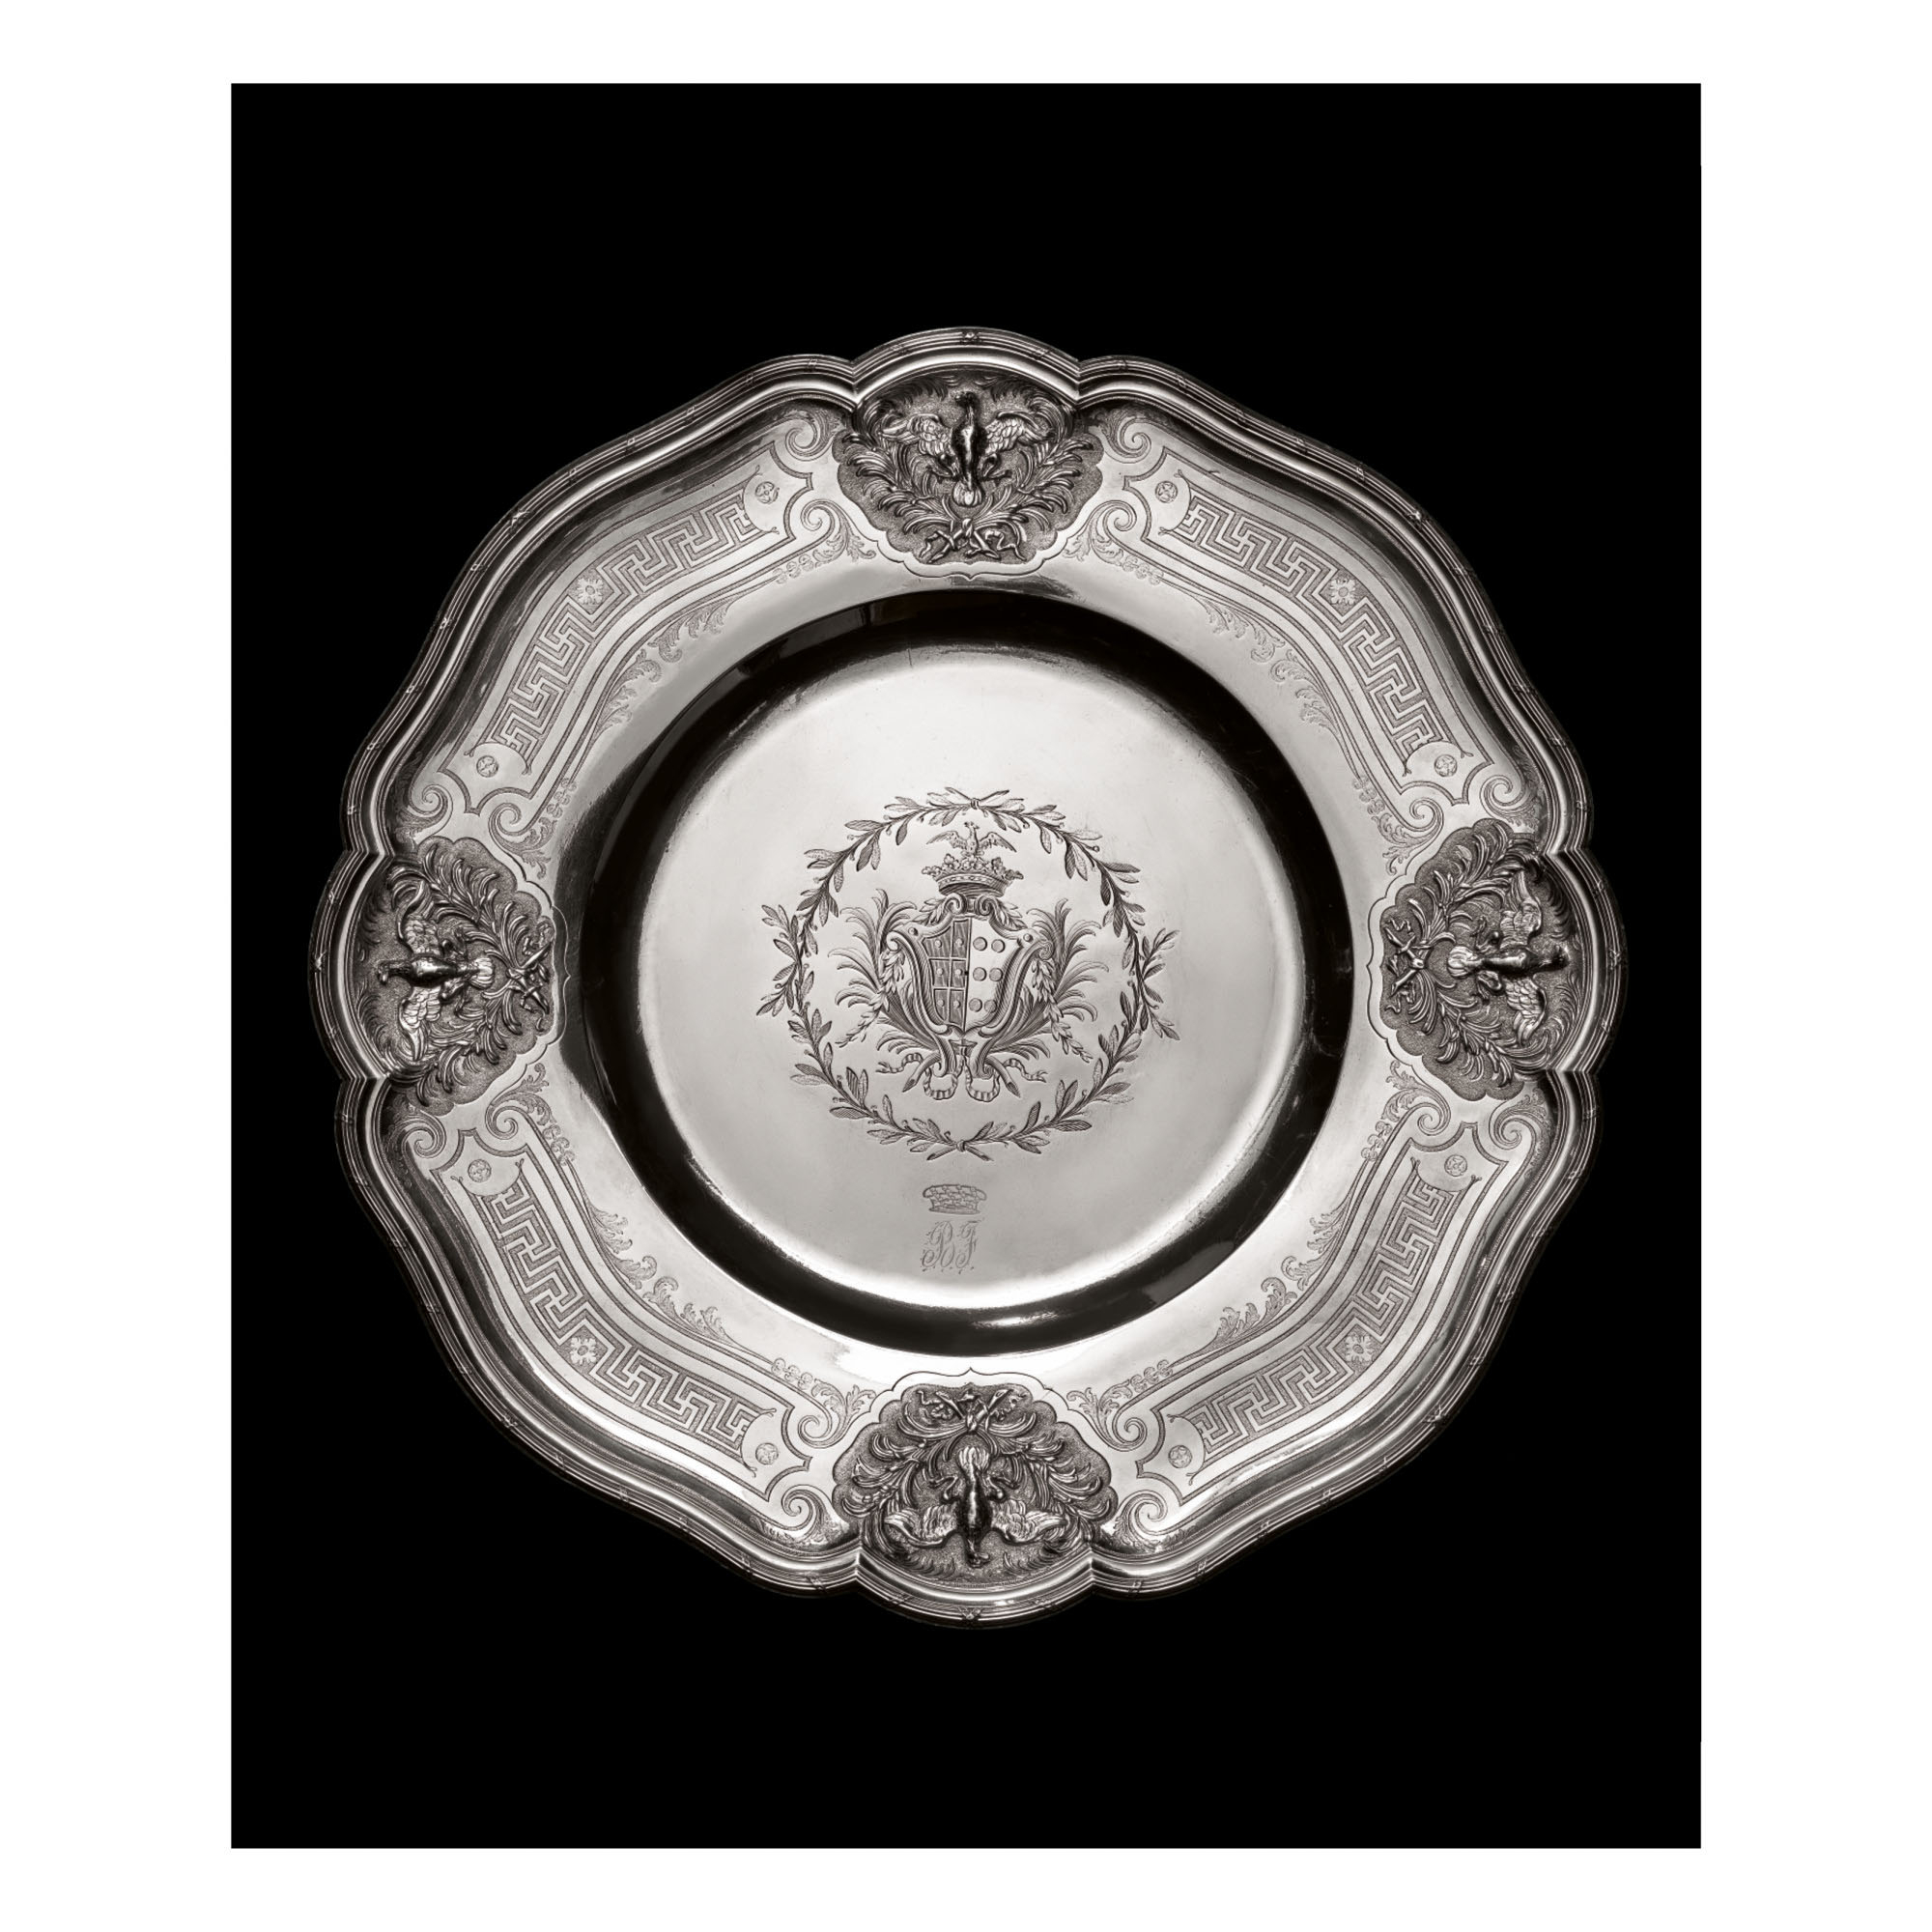 Meuble Ancien Style Henri 4 a louis xv silver tureen to lead sotheby's october auctions